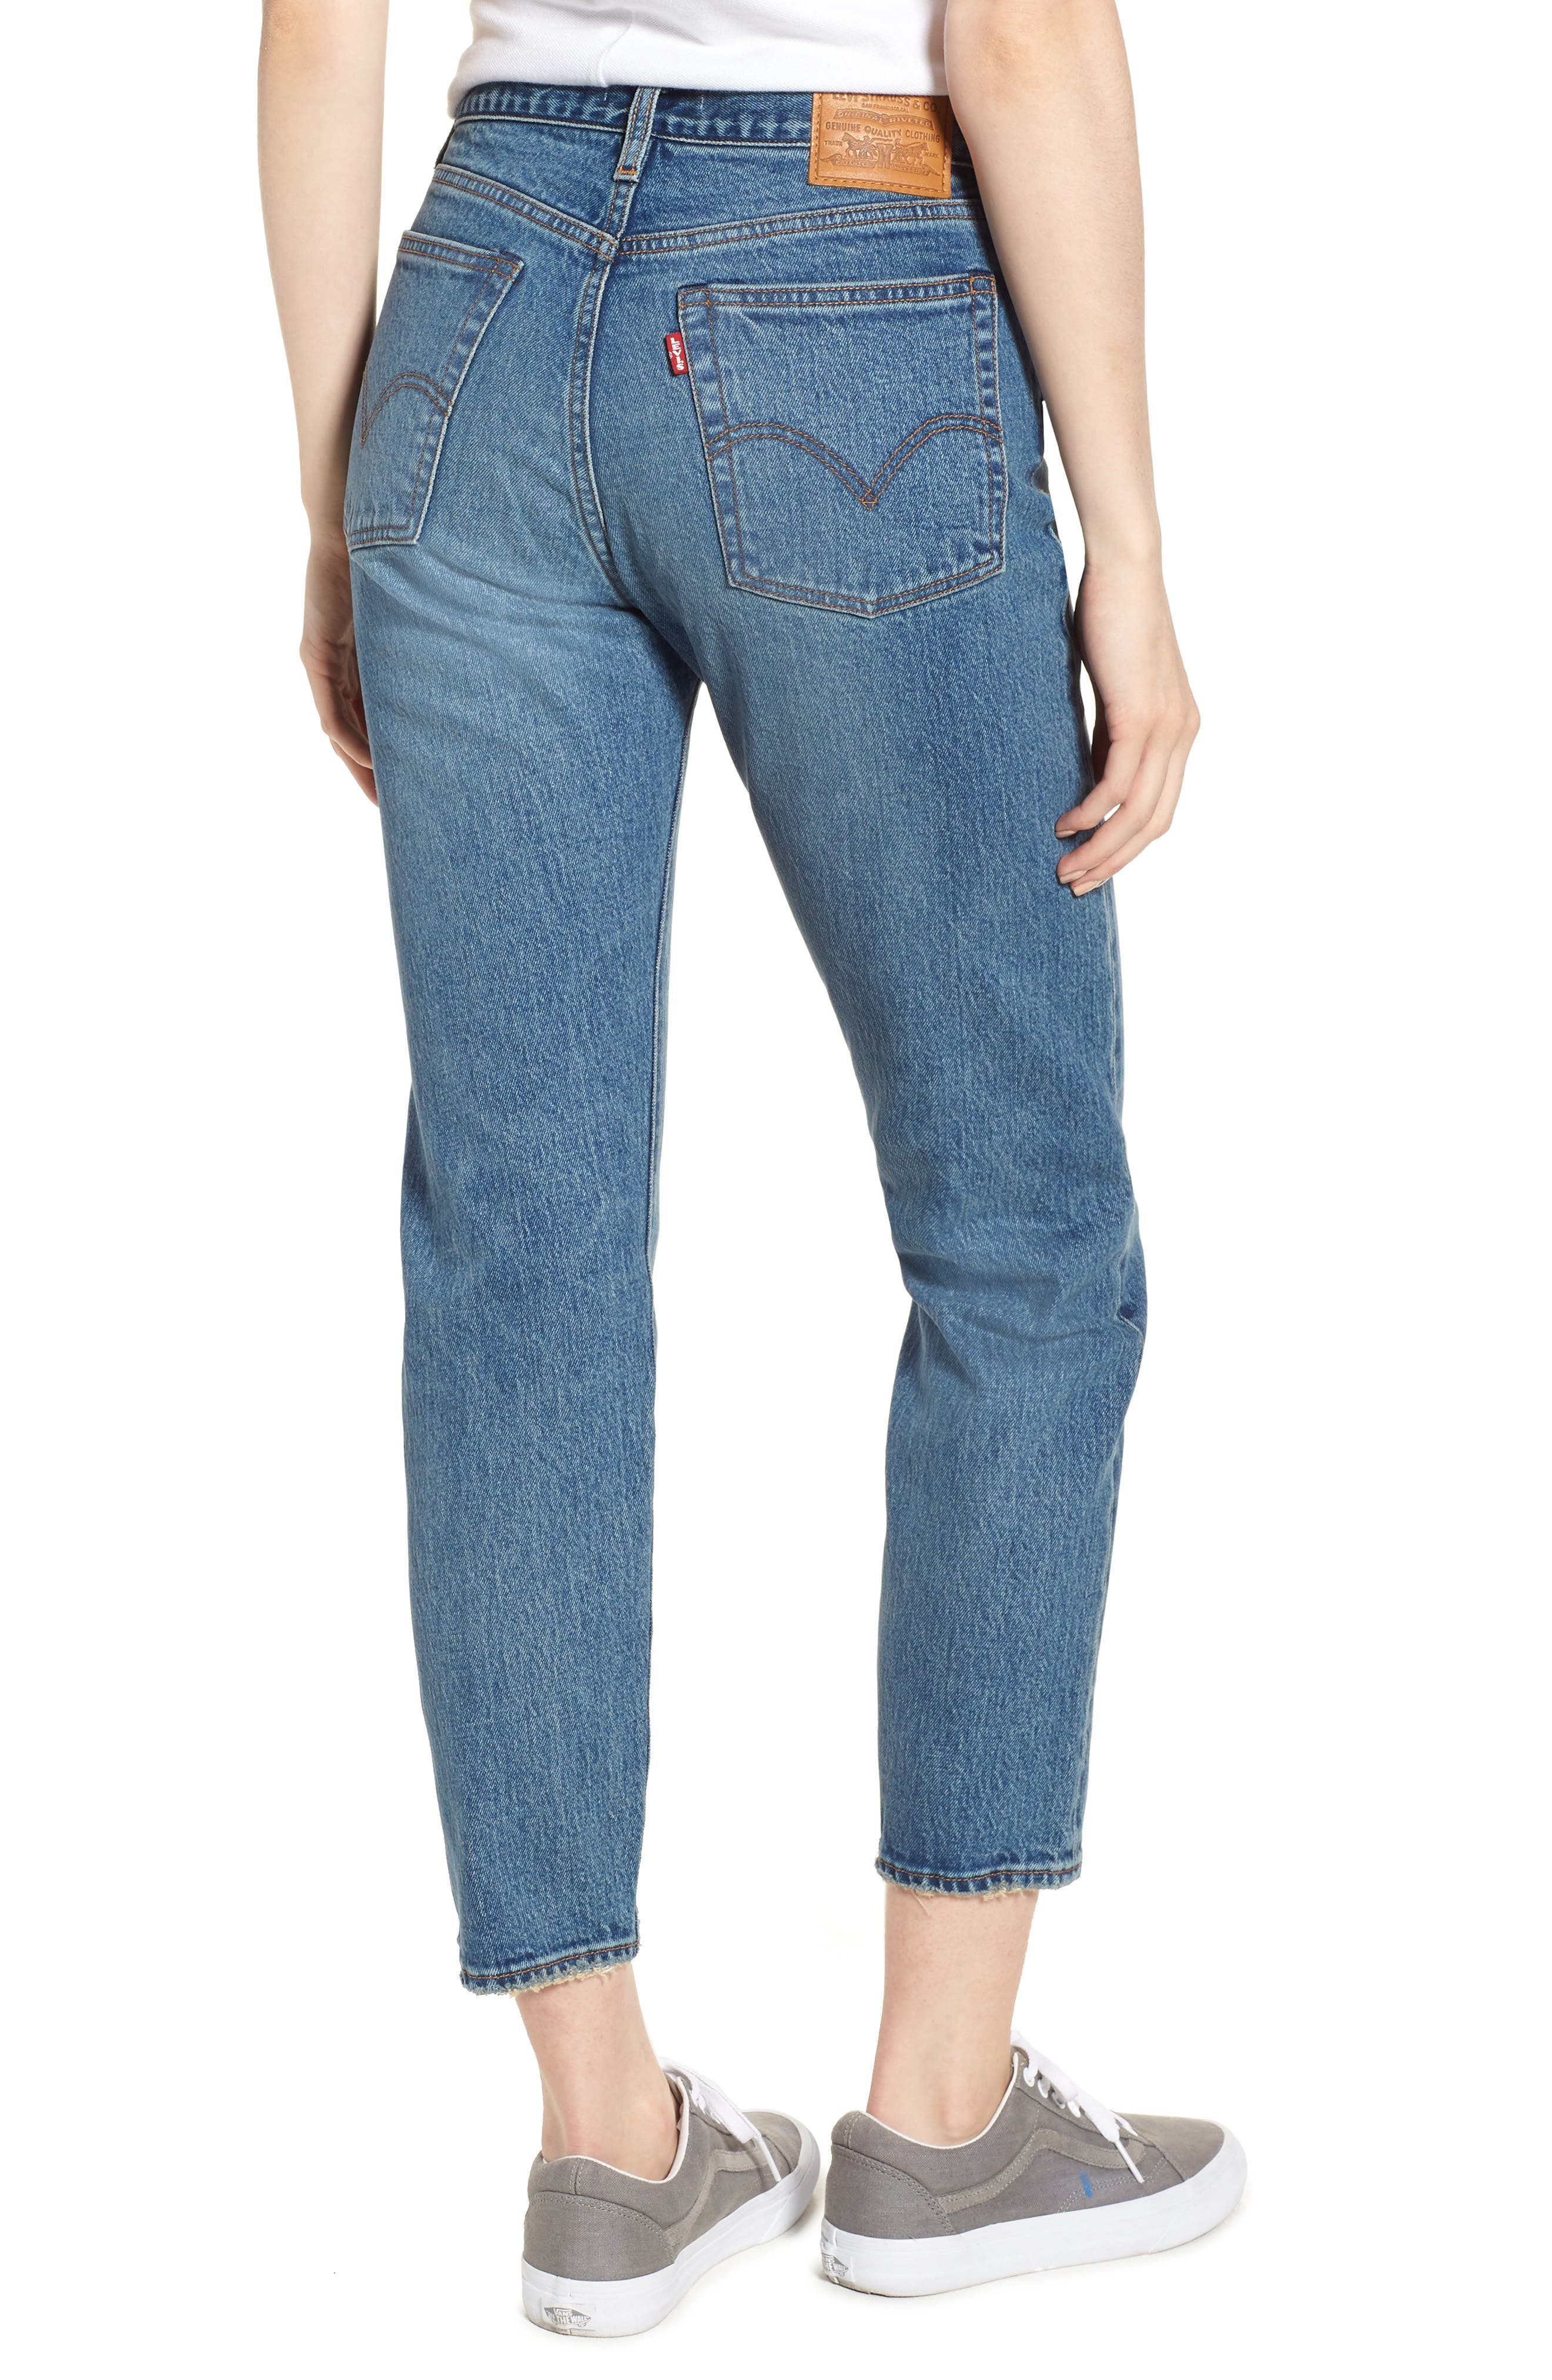 Wedgie Icon Fit High Waist Ankle Jeans,                             Alternate thumbnail 2, color,                             THESE DREAMS